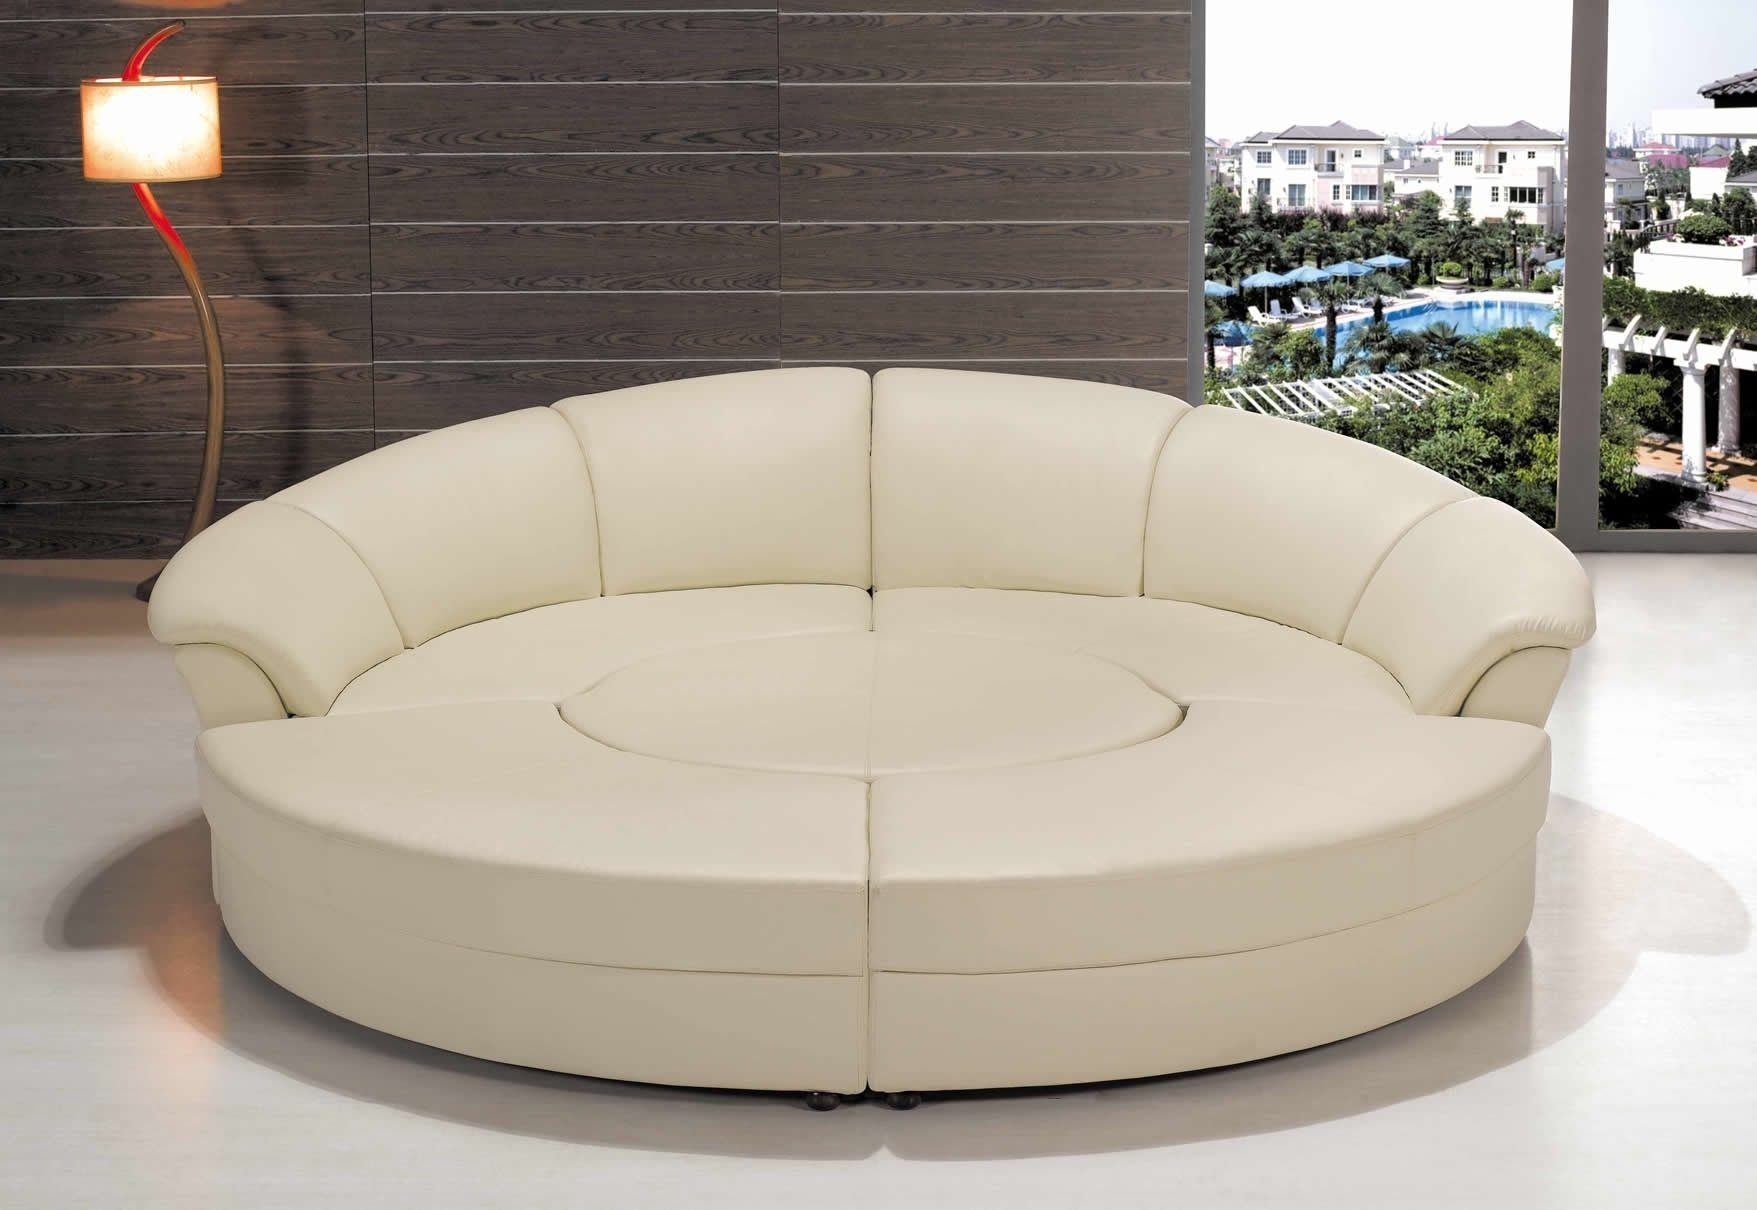 Semi Circular Sectional Sofa 2 - Semi Circular Sofa Uk, Sofa | Stuff throughout Semicircular Sofas (Image 7 of 10)